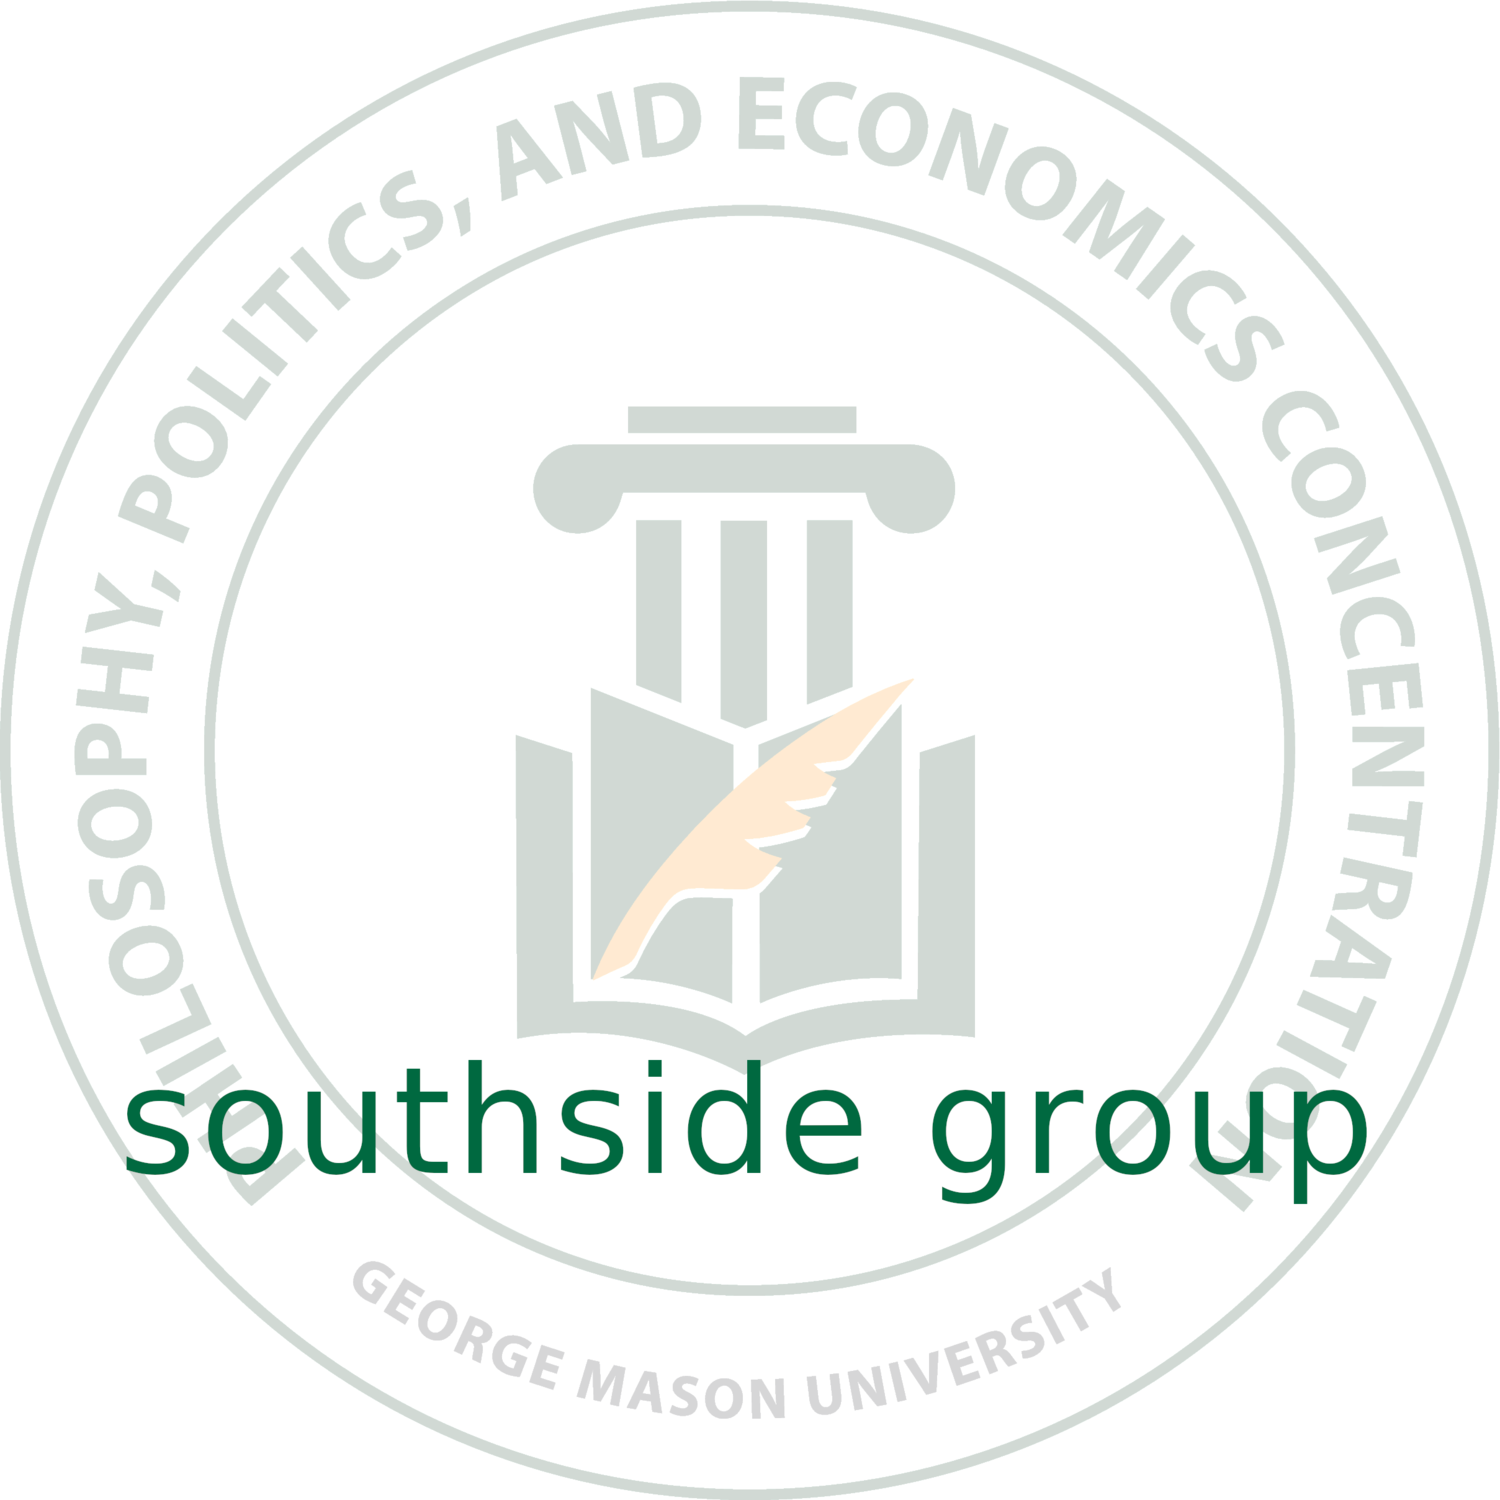 southside group -- April 18 -- 5. Neoliberalism and Home Rule: DC – with Johanna Bockman (GMU)